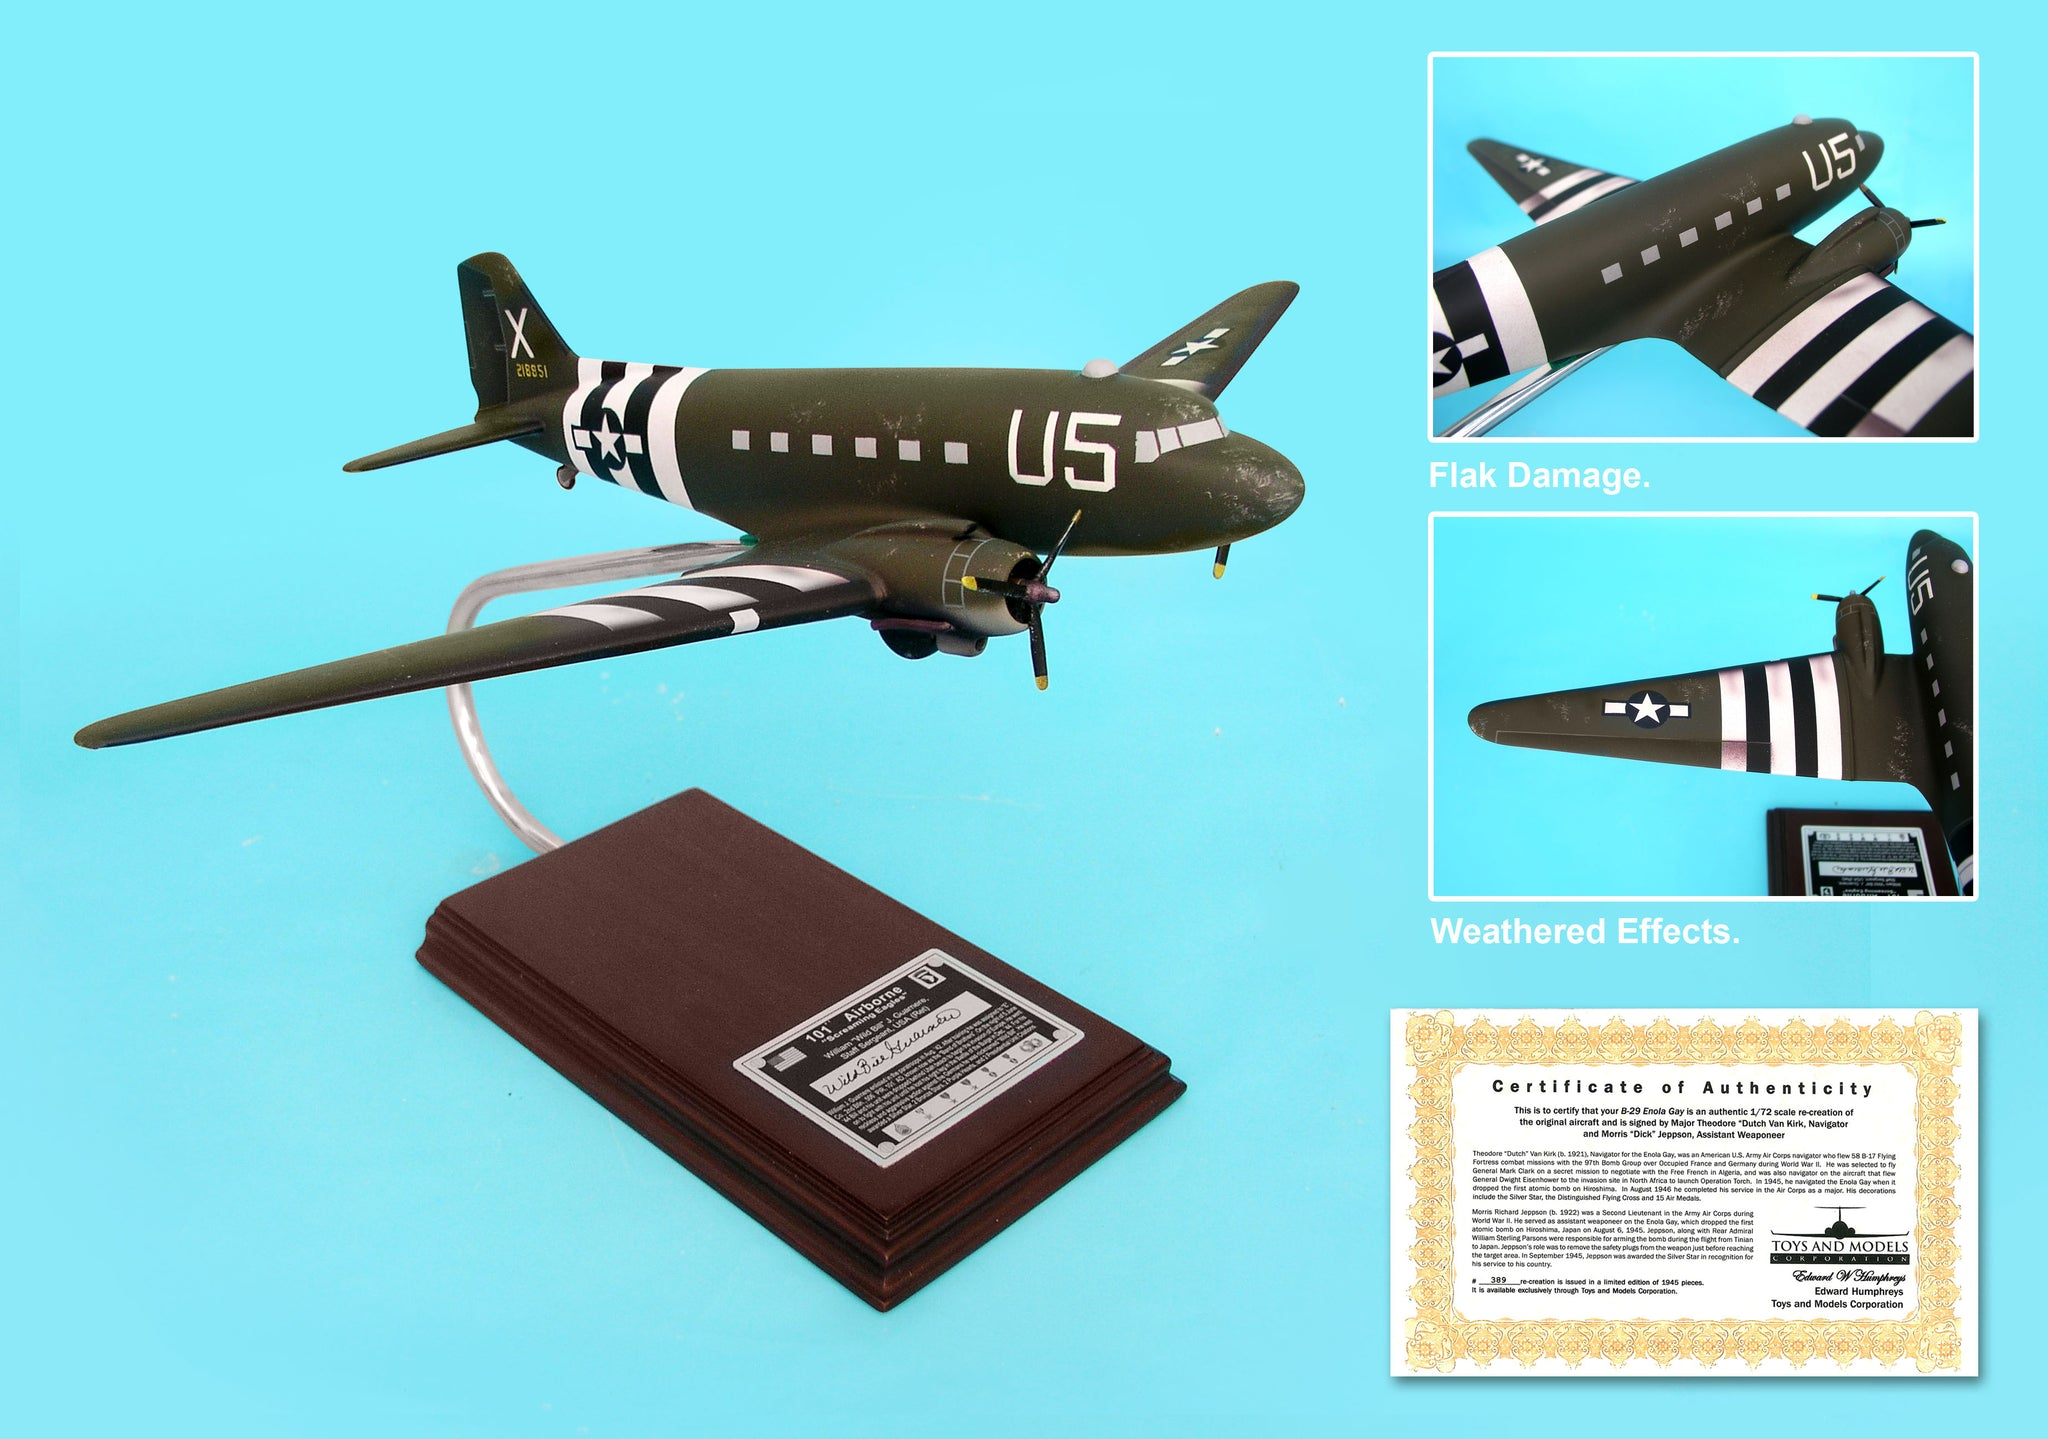 A1672 EXEC SER C-47 BAND OF BROTHERS WILLIAM GUARNERE 1/62